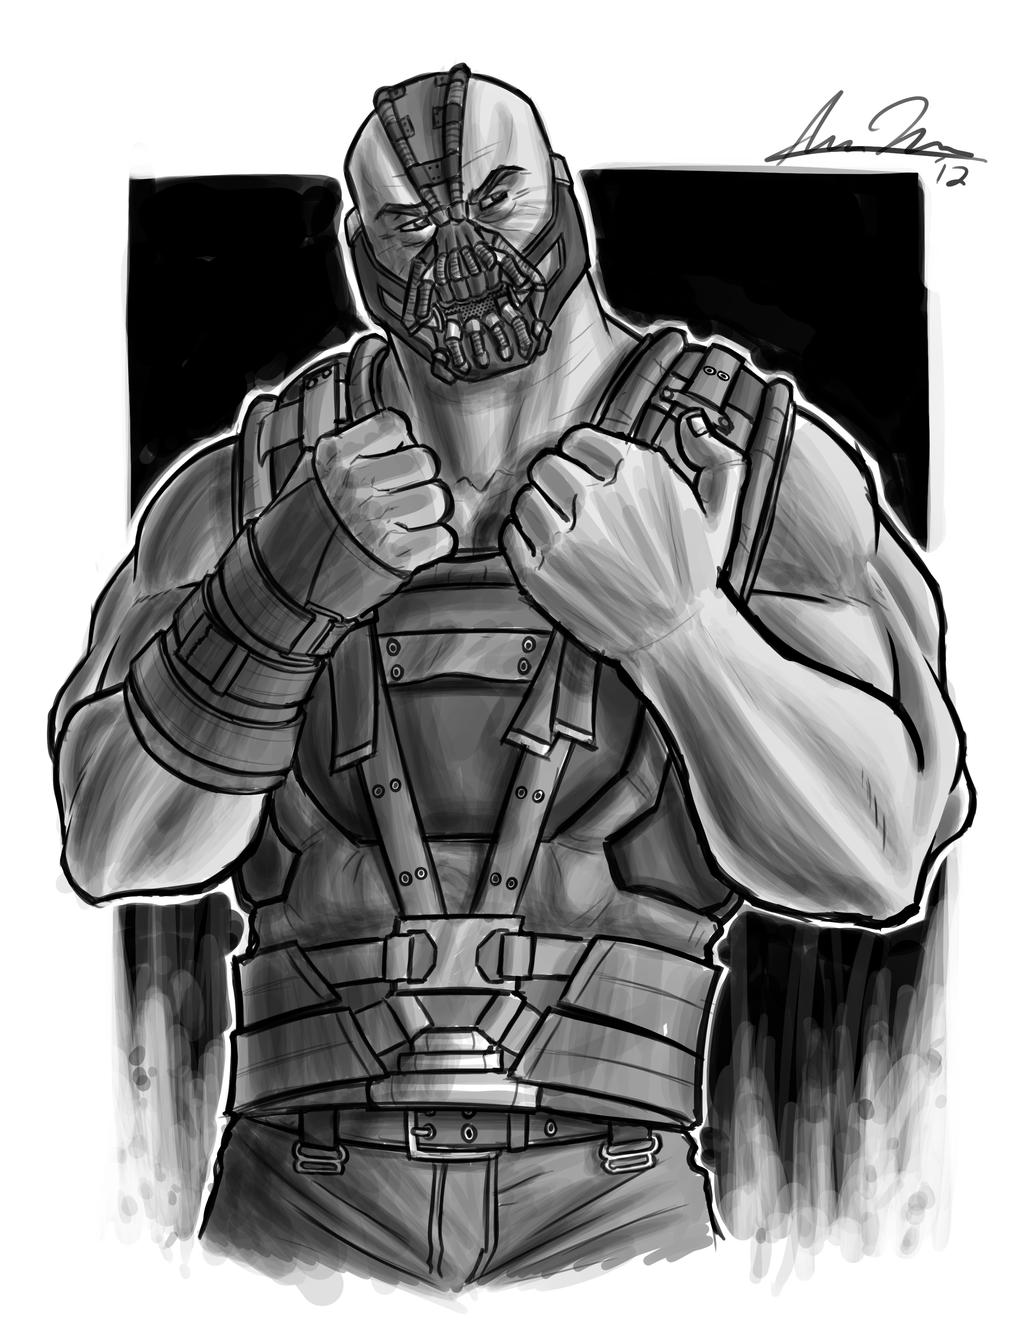 Charity Sketch: Bane by darkeblue on DeviantArt